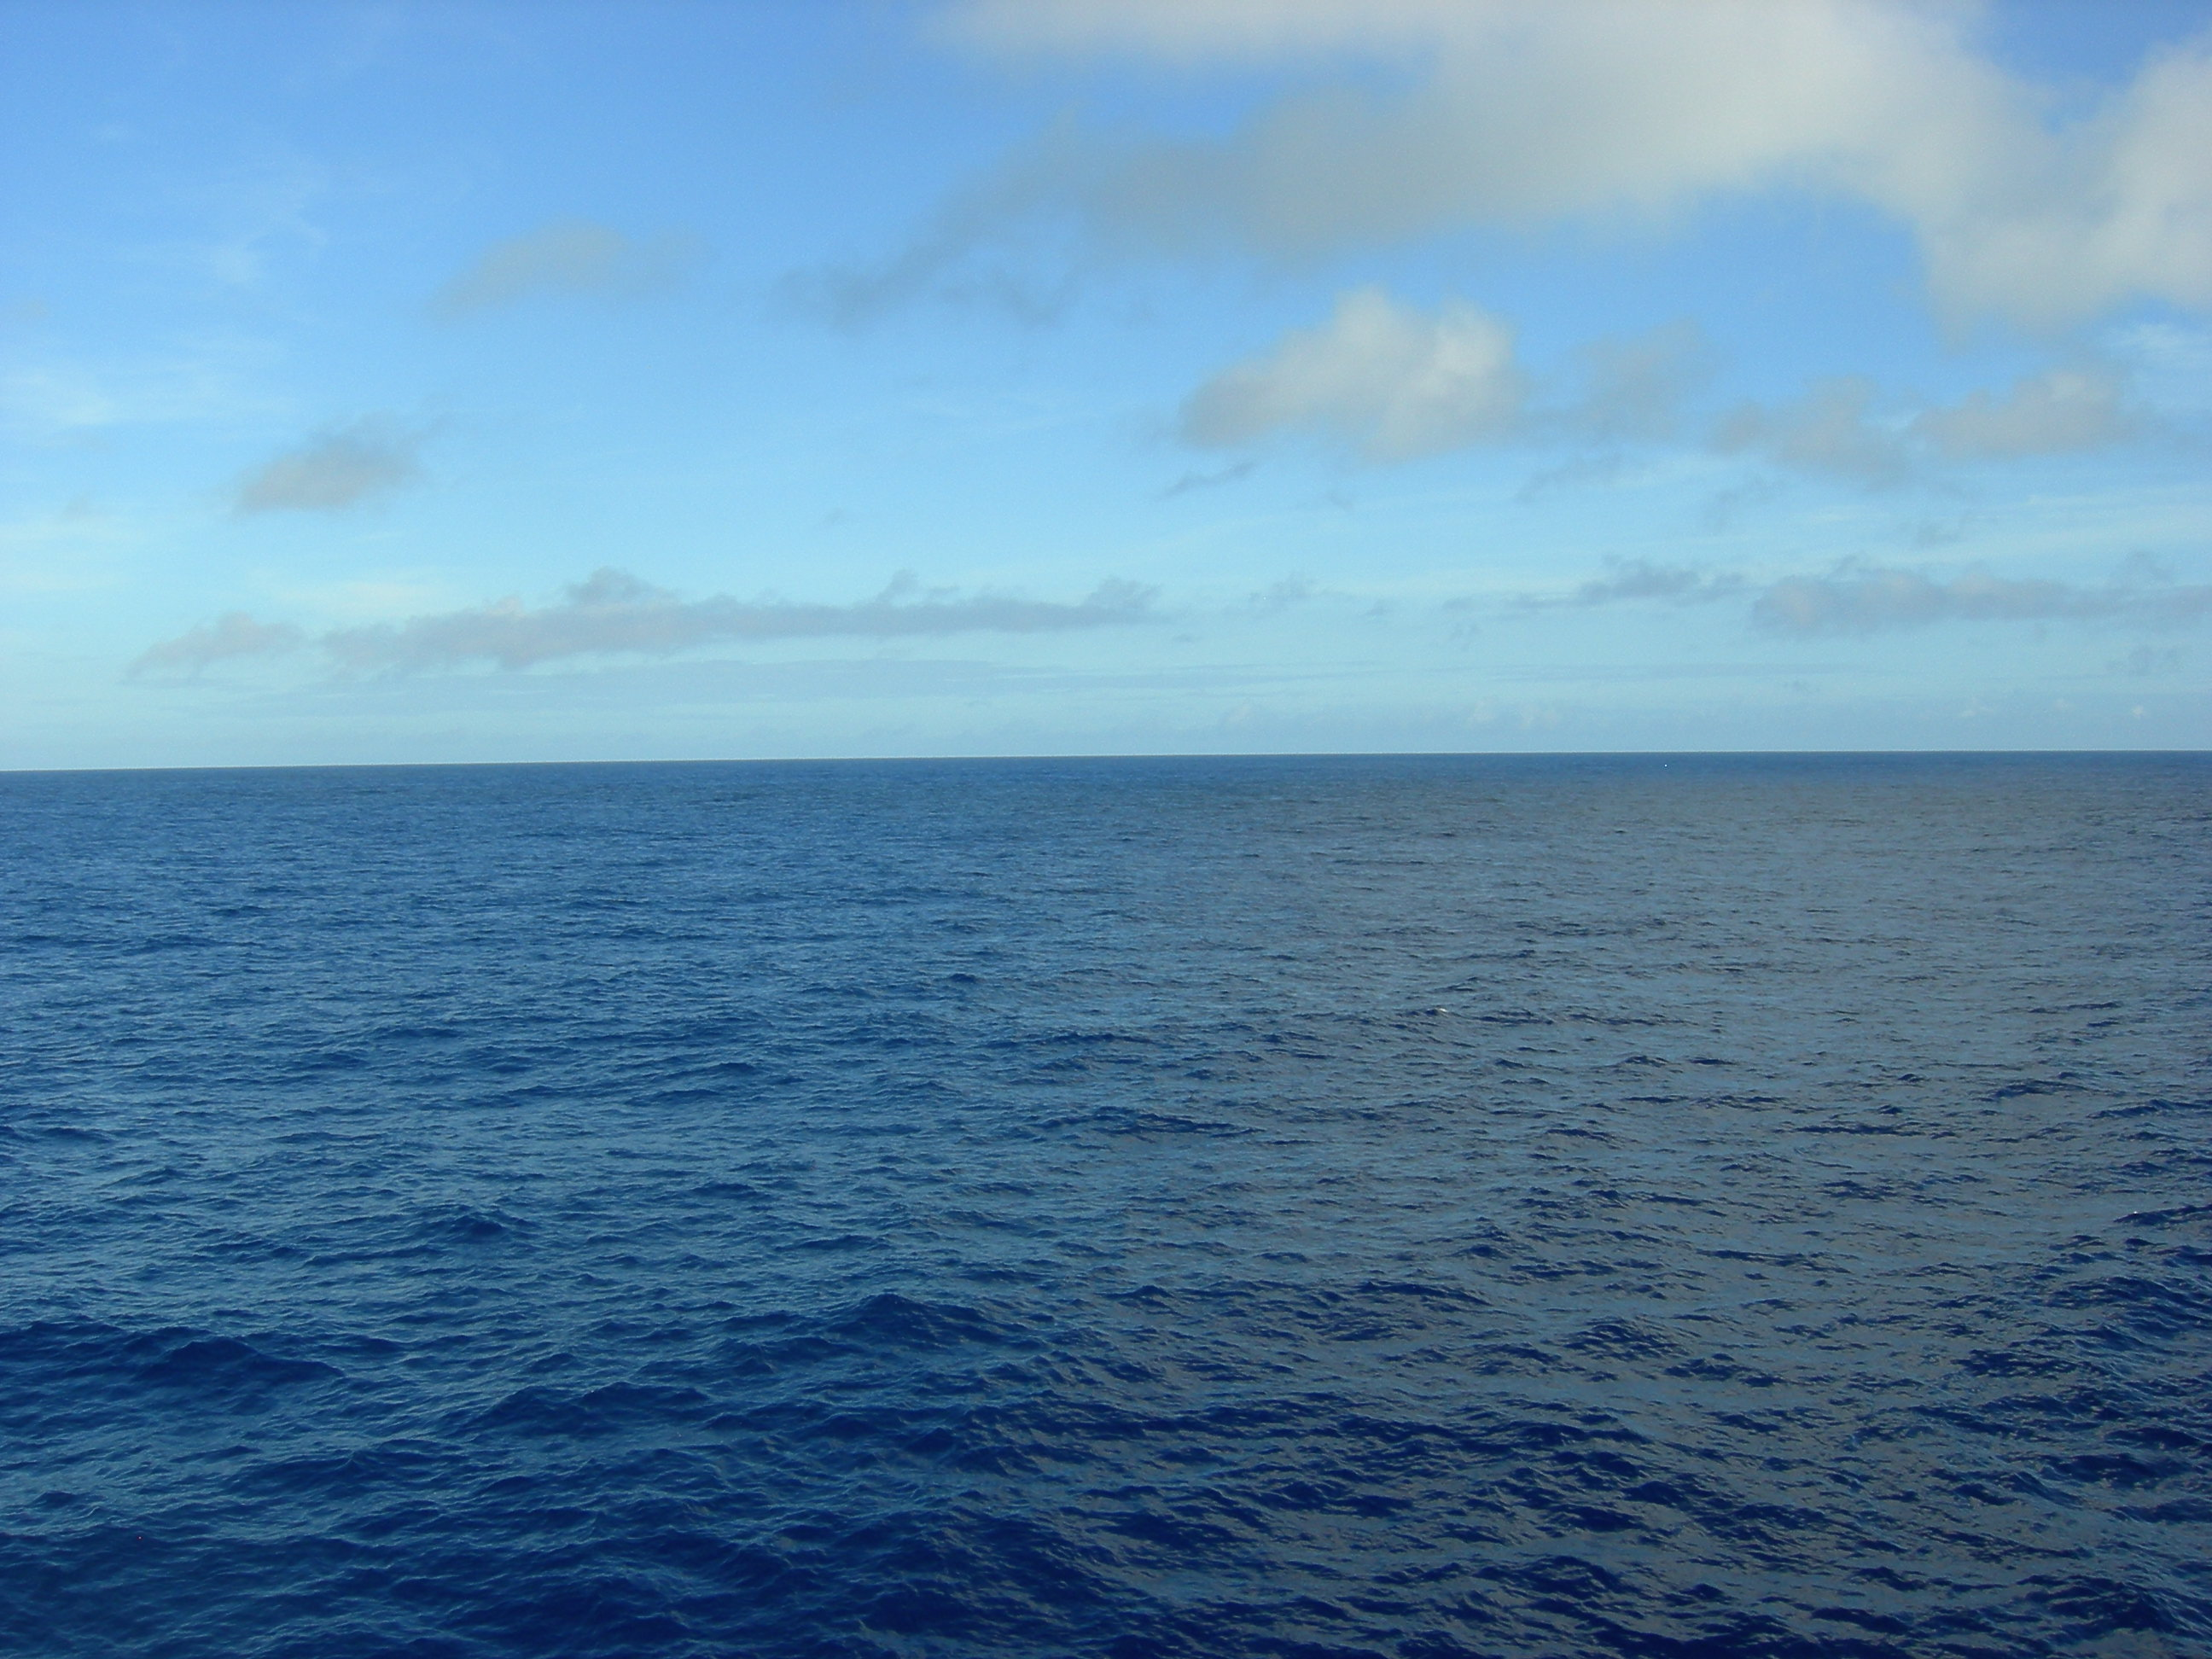 Three Ways of Looking at the Great Pacific Garbage Patch